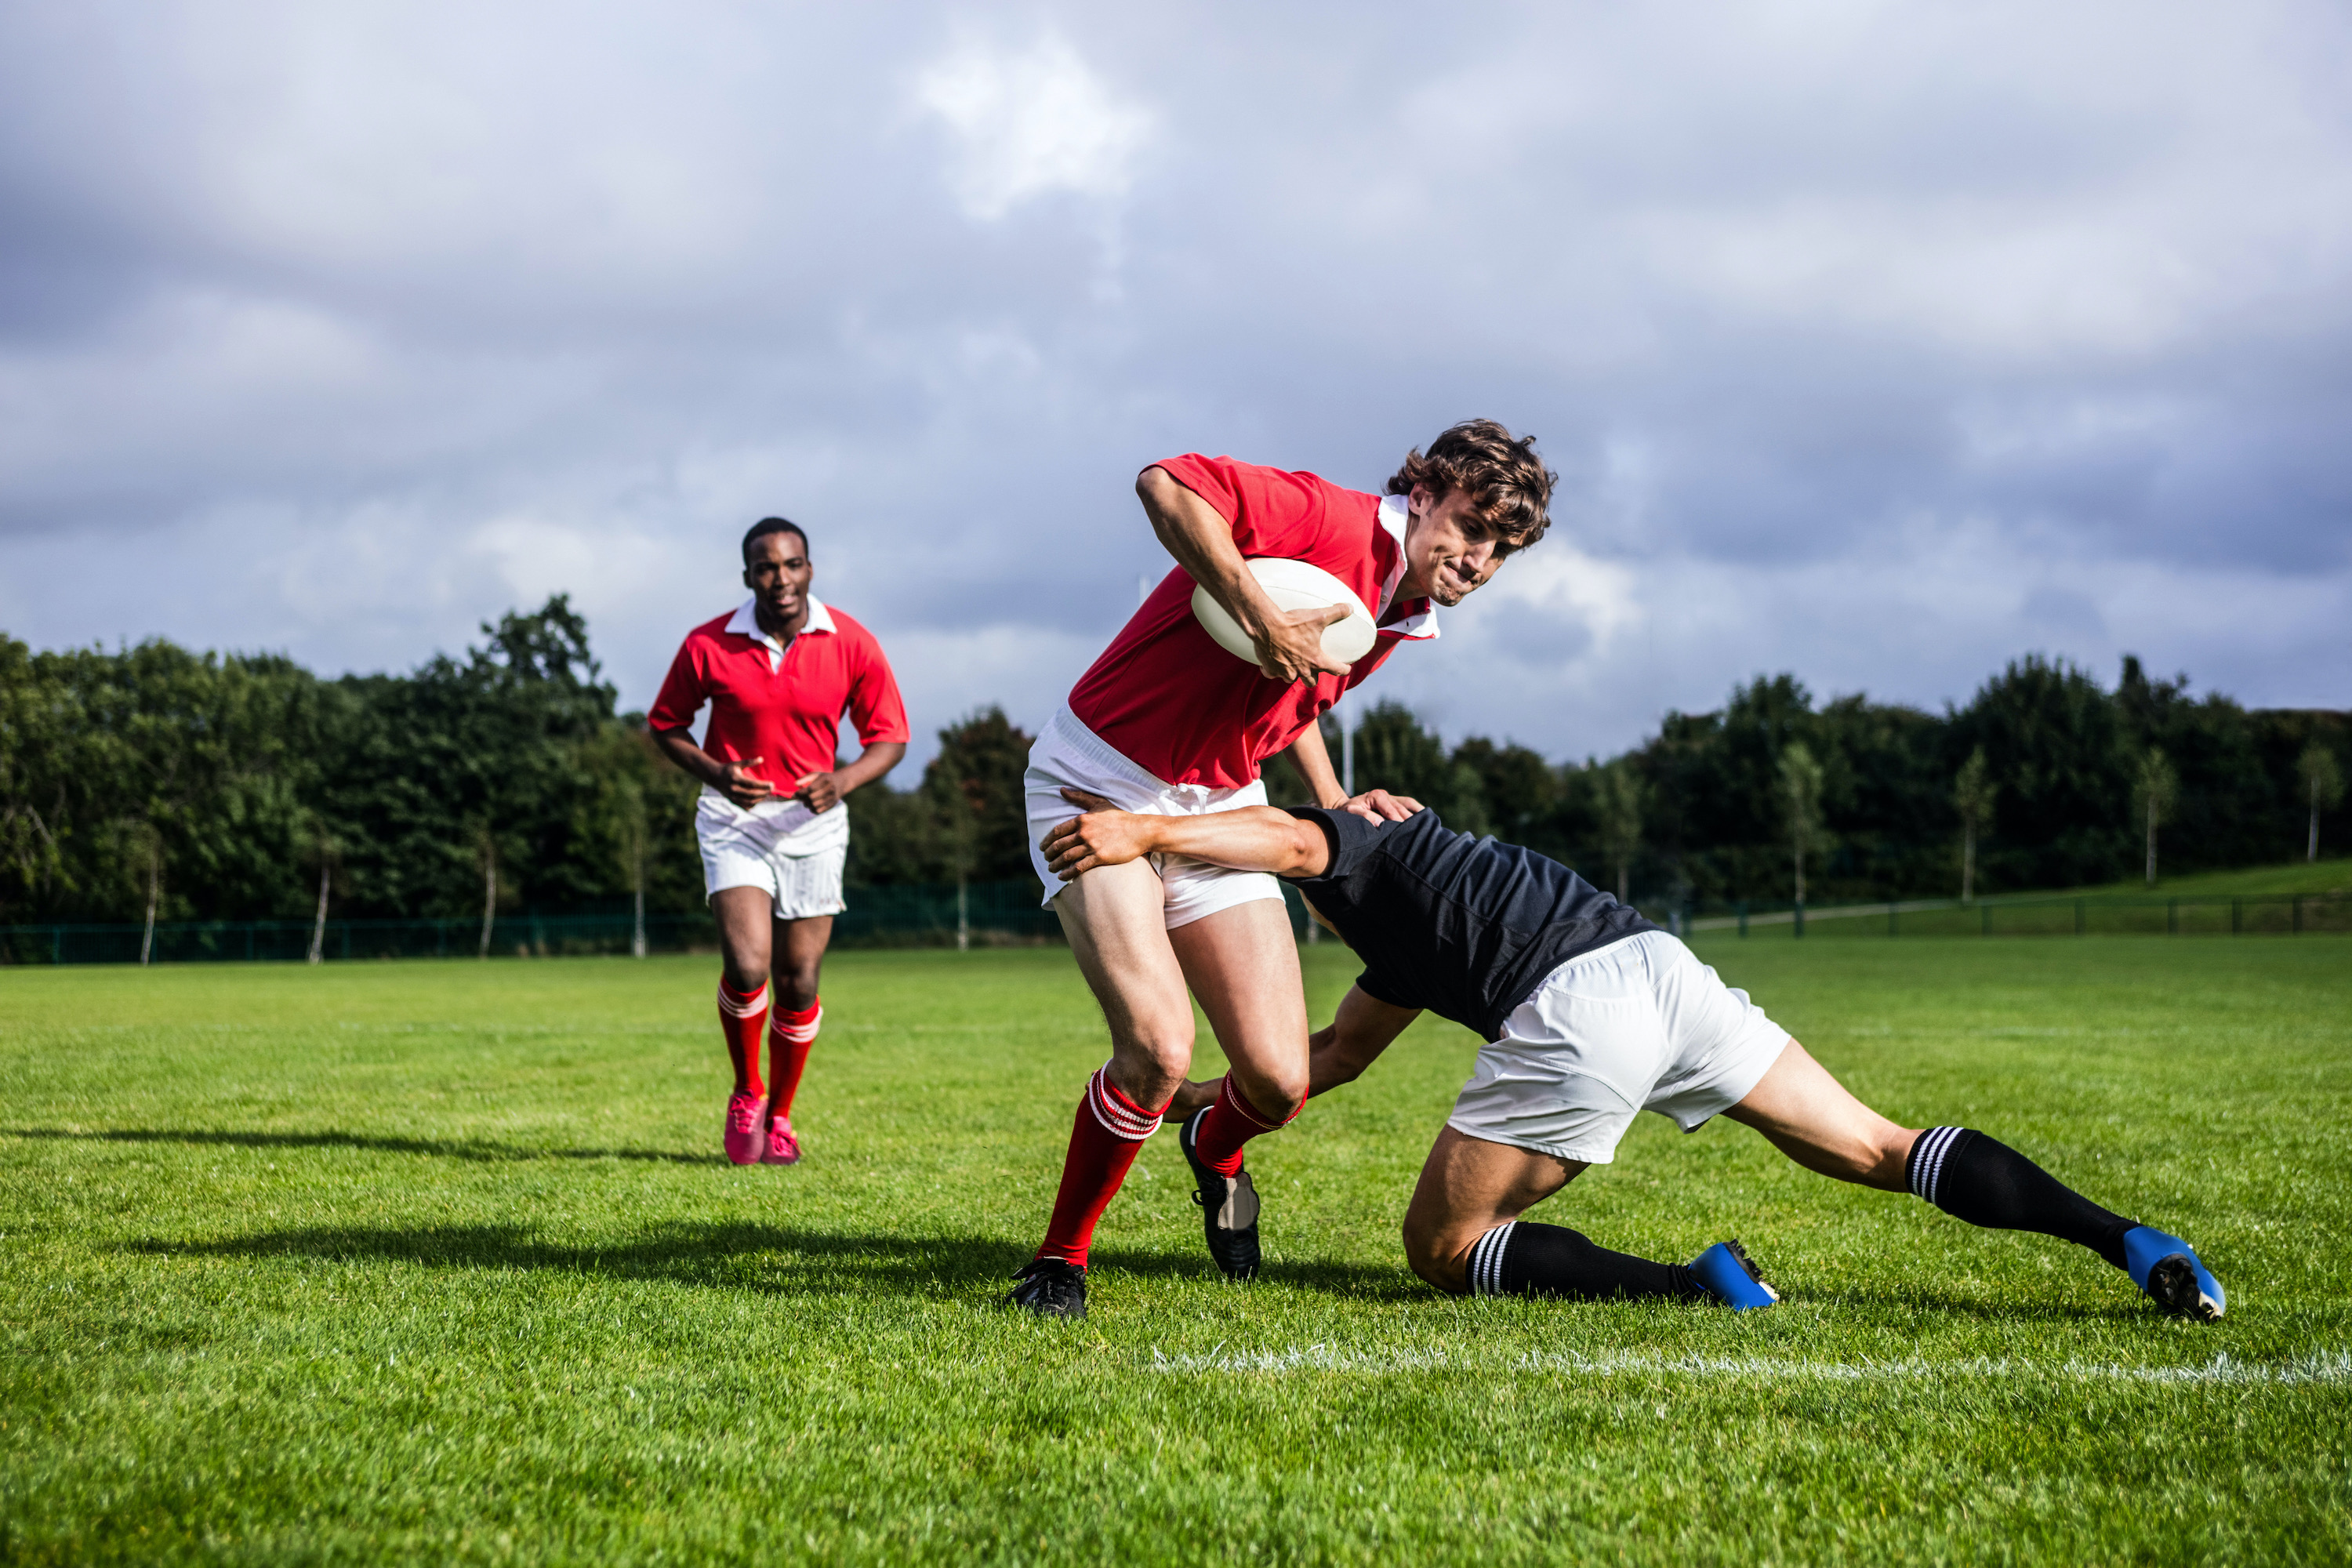 Rugby players on a field. The player at the front has the ball and is being tackled by a player from the opposing team.